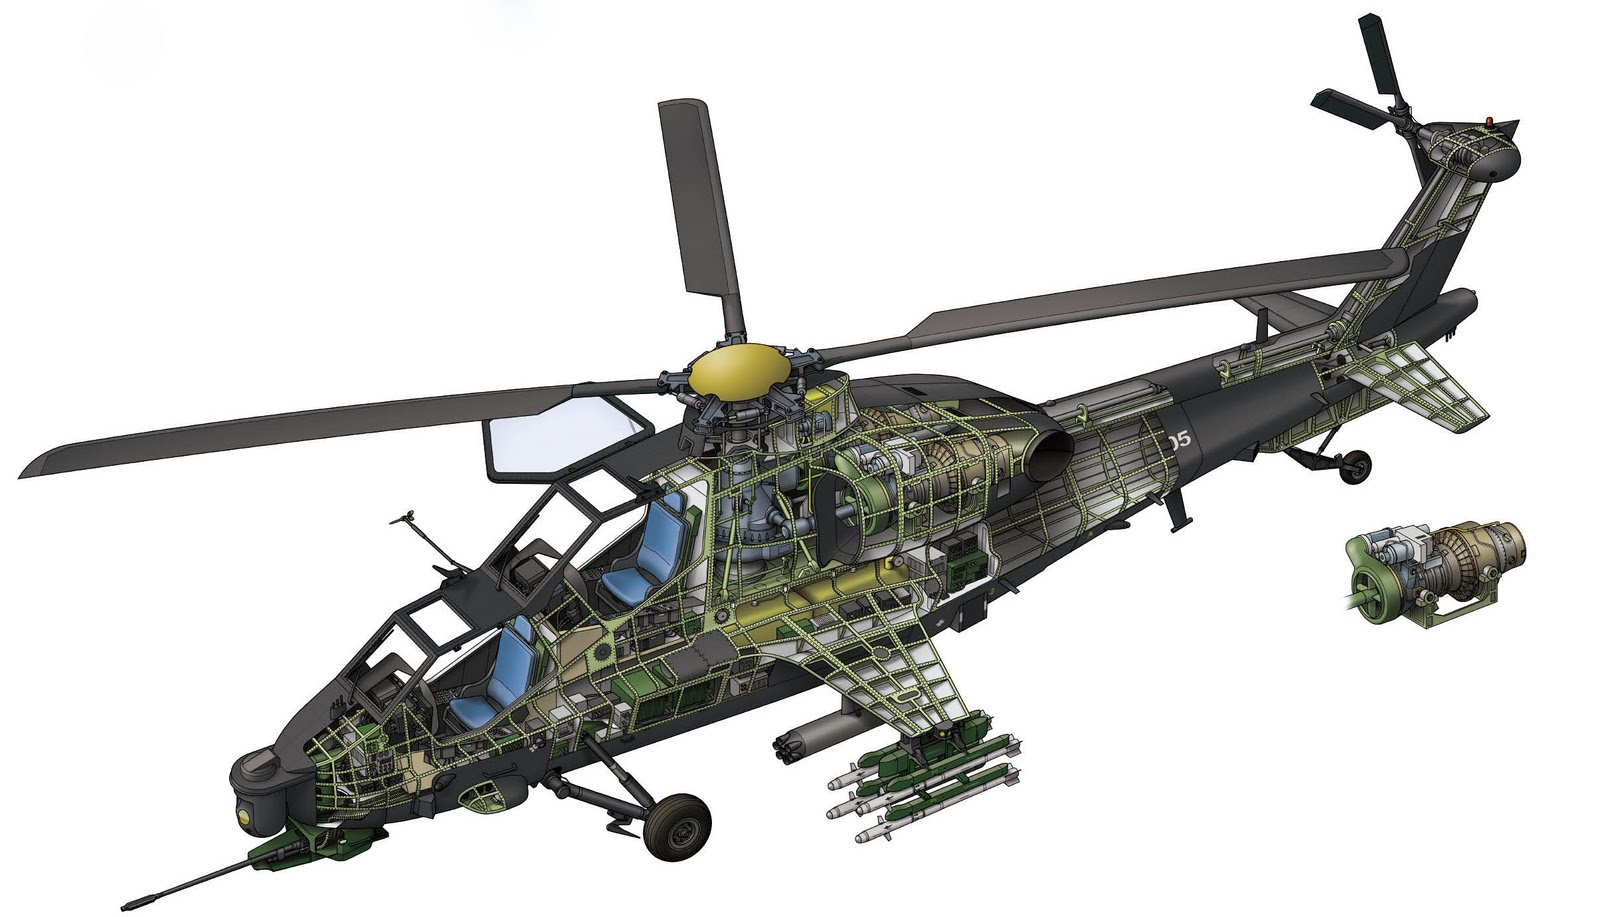 a 129 helicopter with The Wz 10 Is Attack Helicopter on Index moreover Sierra Leone Operations Palliser And Barras further 2 together with Lego City Jungle Explorers Jungle Exploration Site 60161 6174642 122872606 likewise Chinese Z 10 Gunship Helicopter.